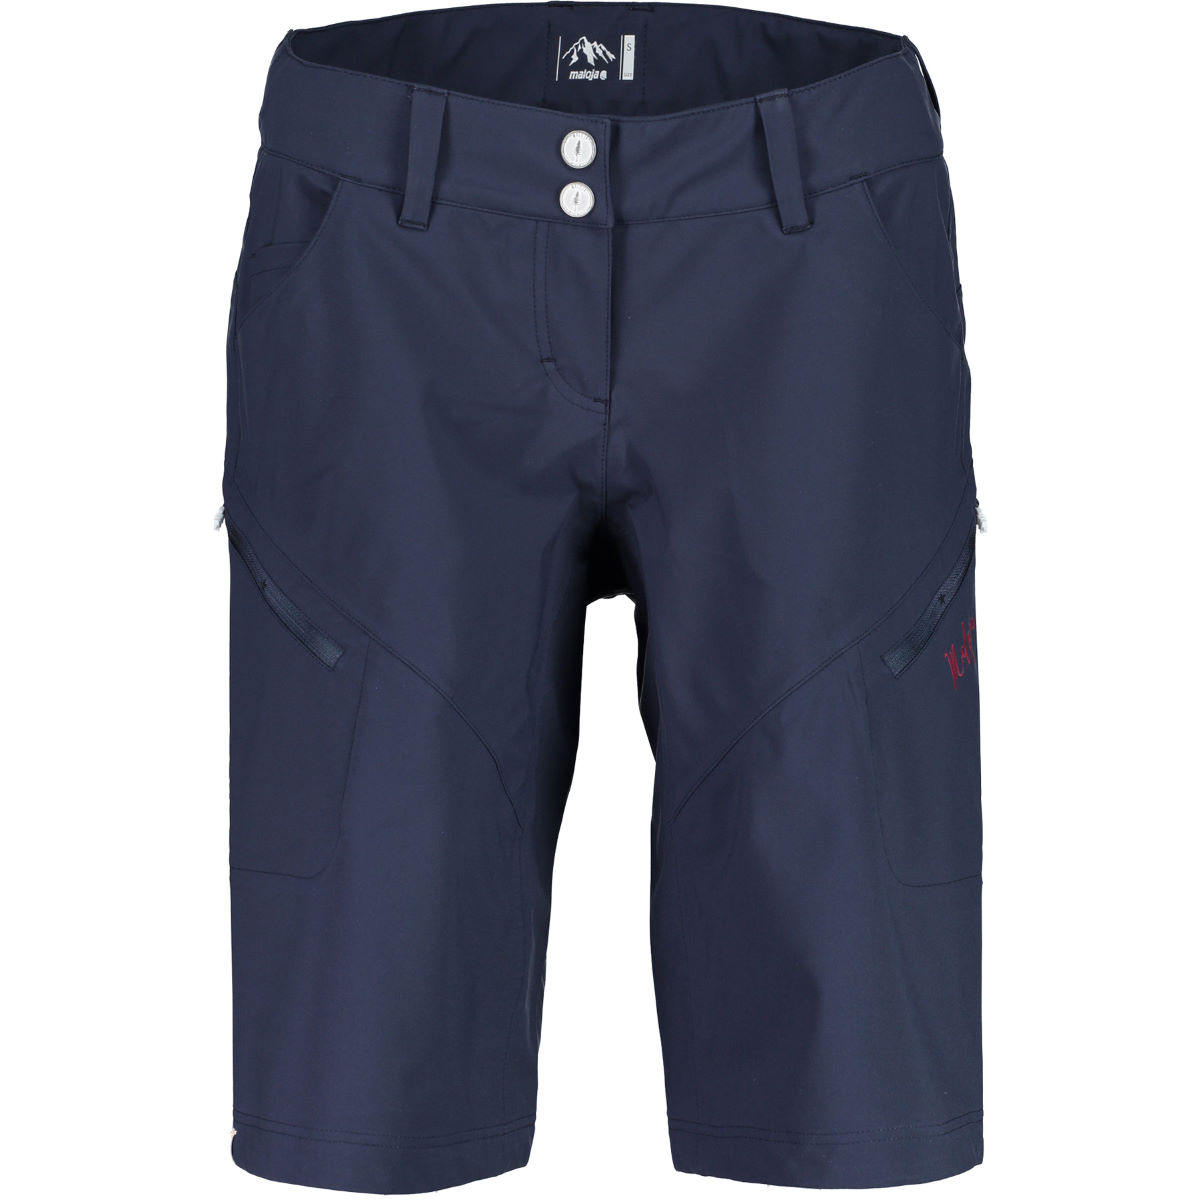 Short Femme Maloja SeoulM Freeride - S Mountain Lake Shorts VTT